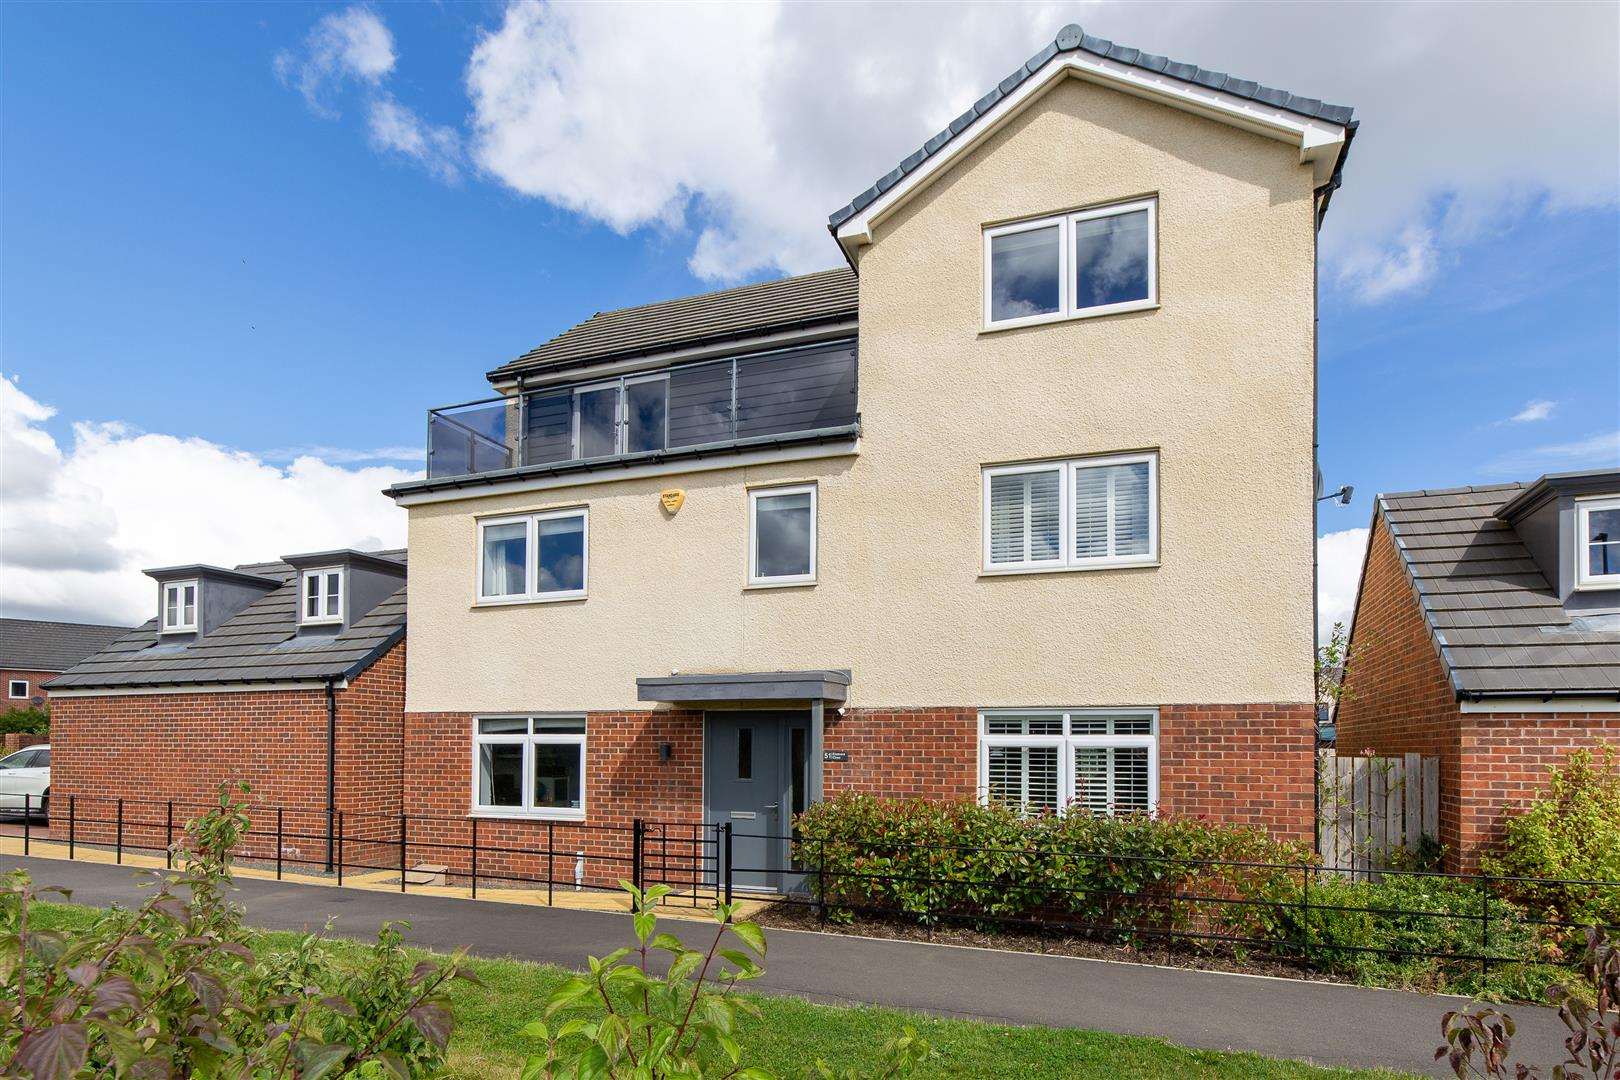 5 bed detached house for sale in Great Park, NE13 9BW, NE13